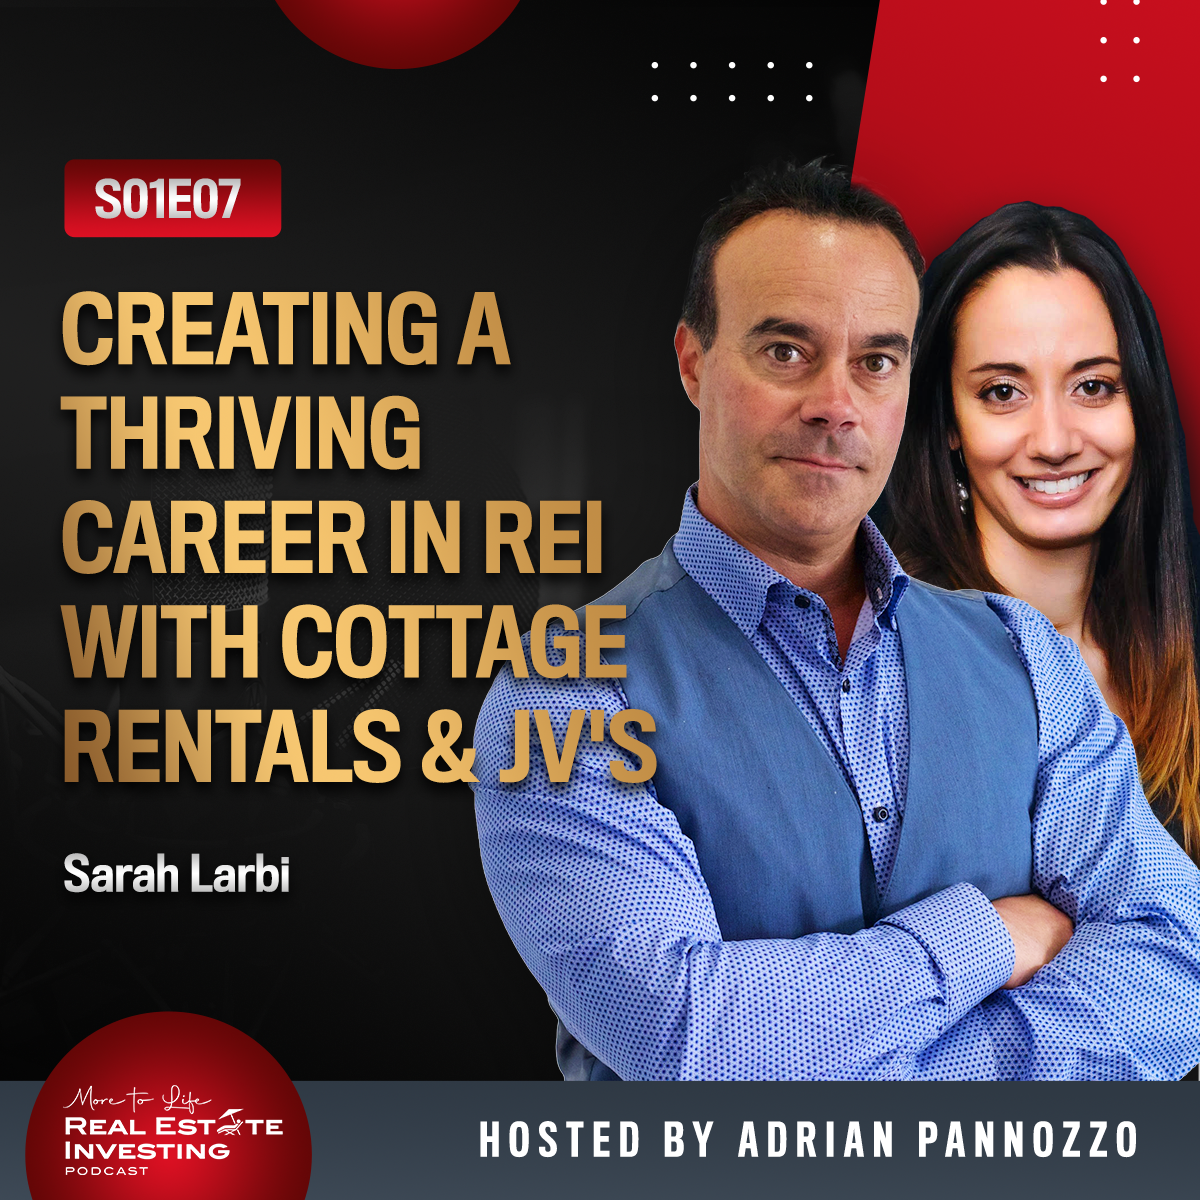 Creating a Thriving Career in REI with Cottage Rentals & JV's with Sarah Larbi | S01E07